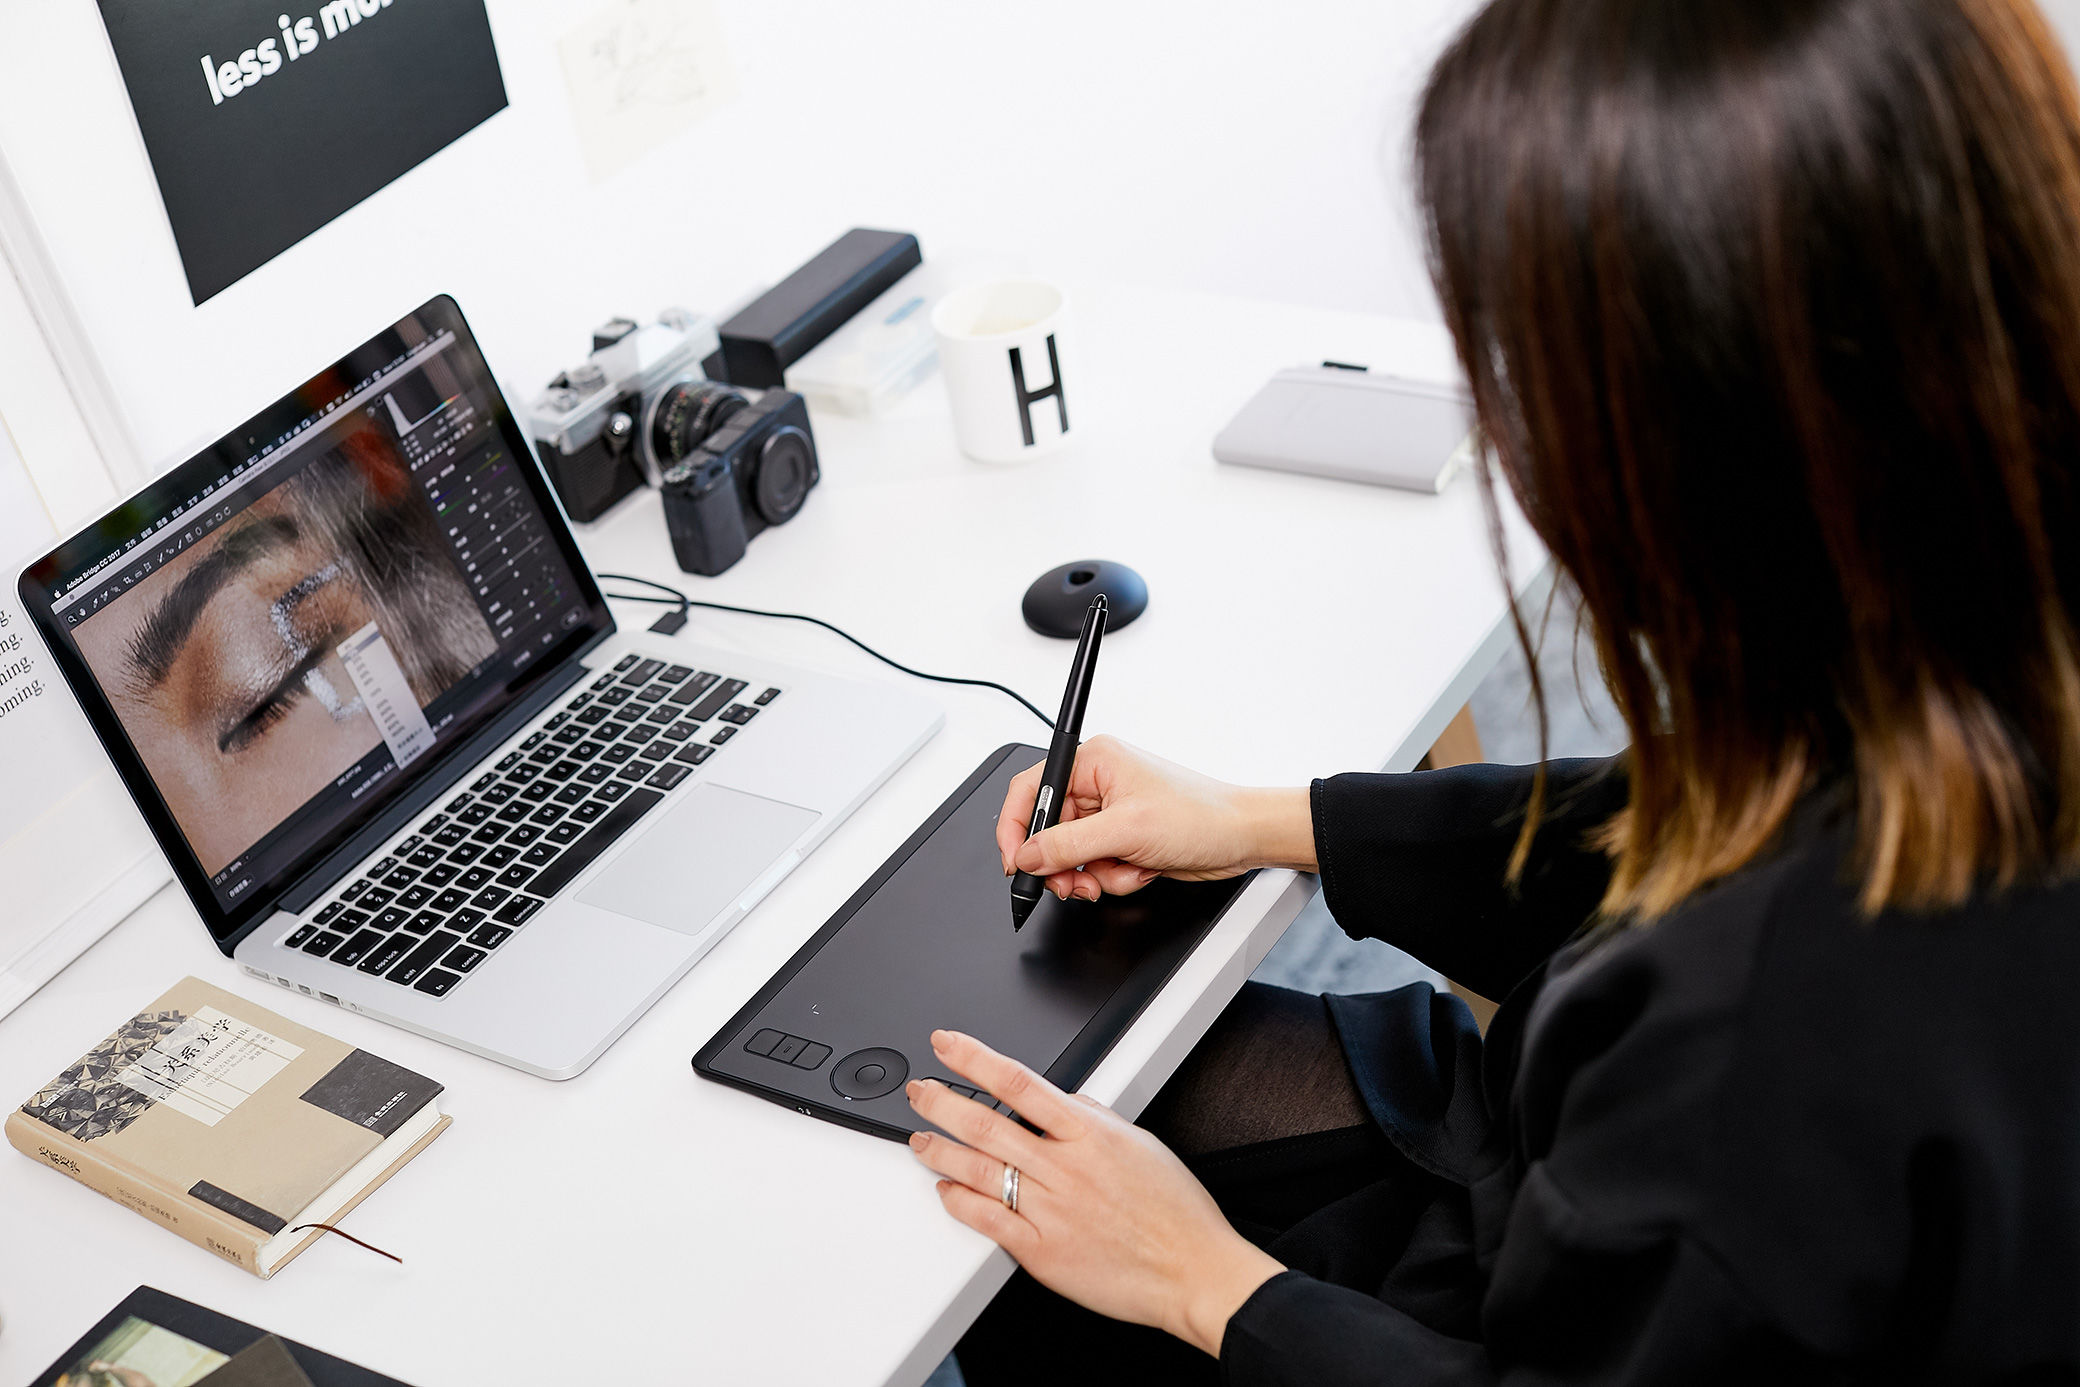 There's now a small Wacom Intuos Pro again for designers and